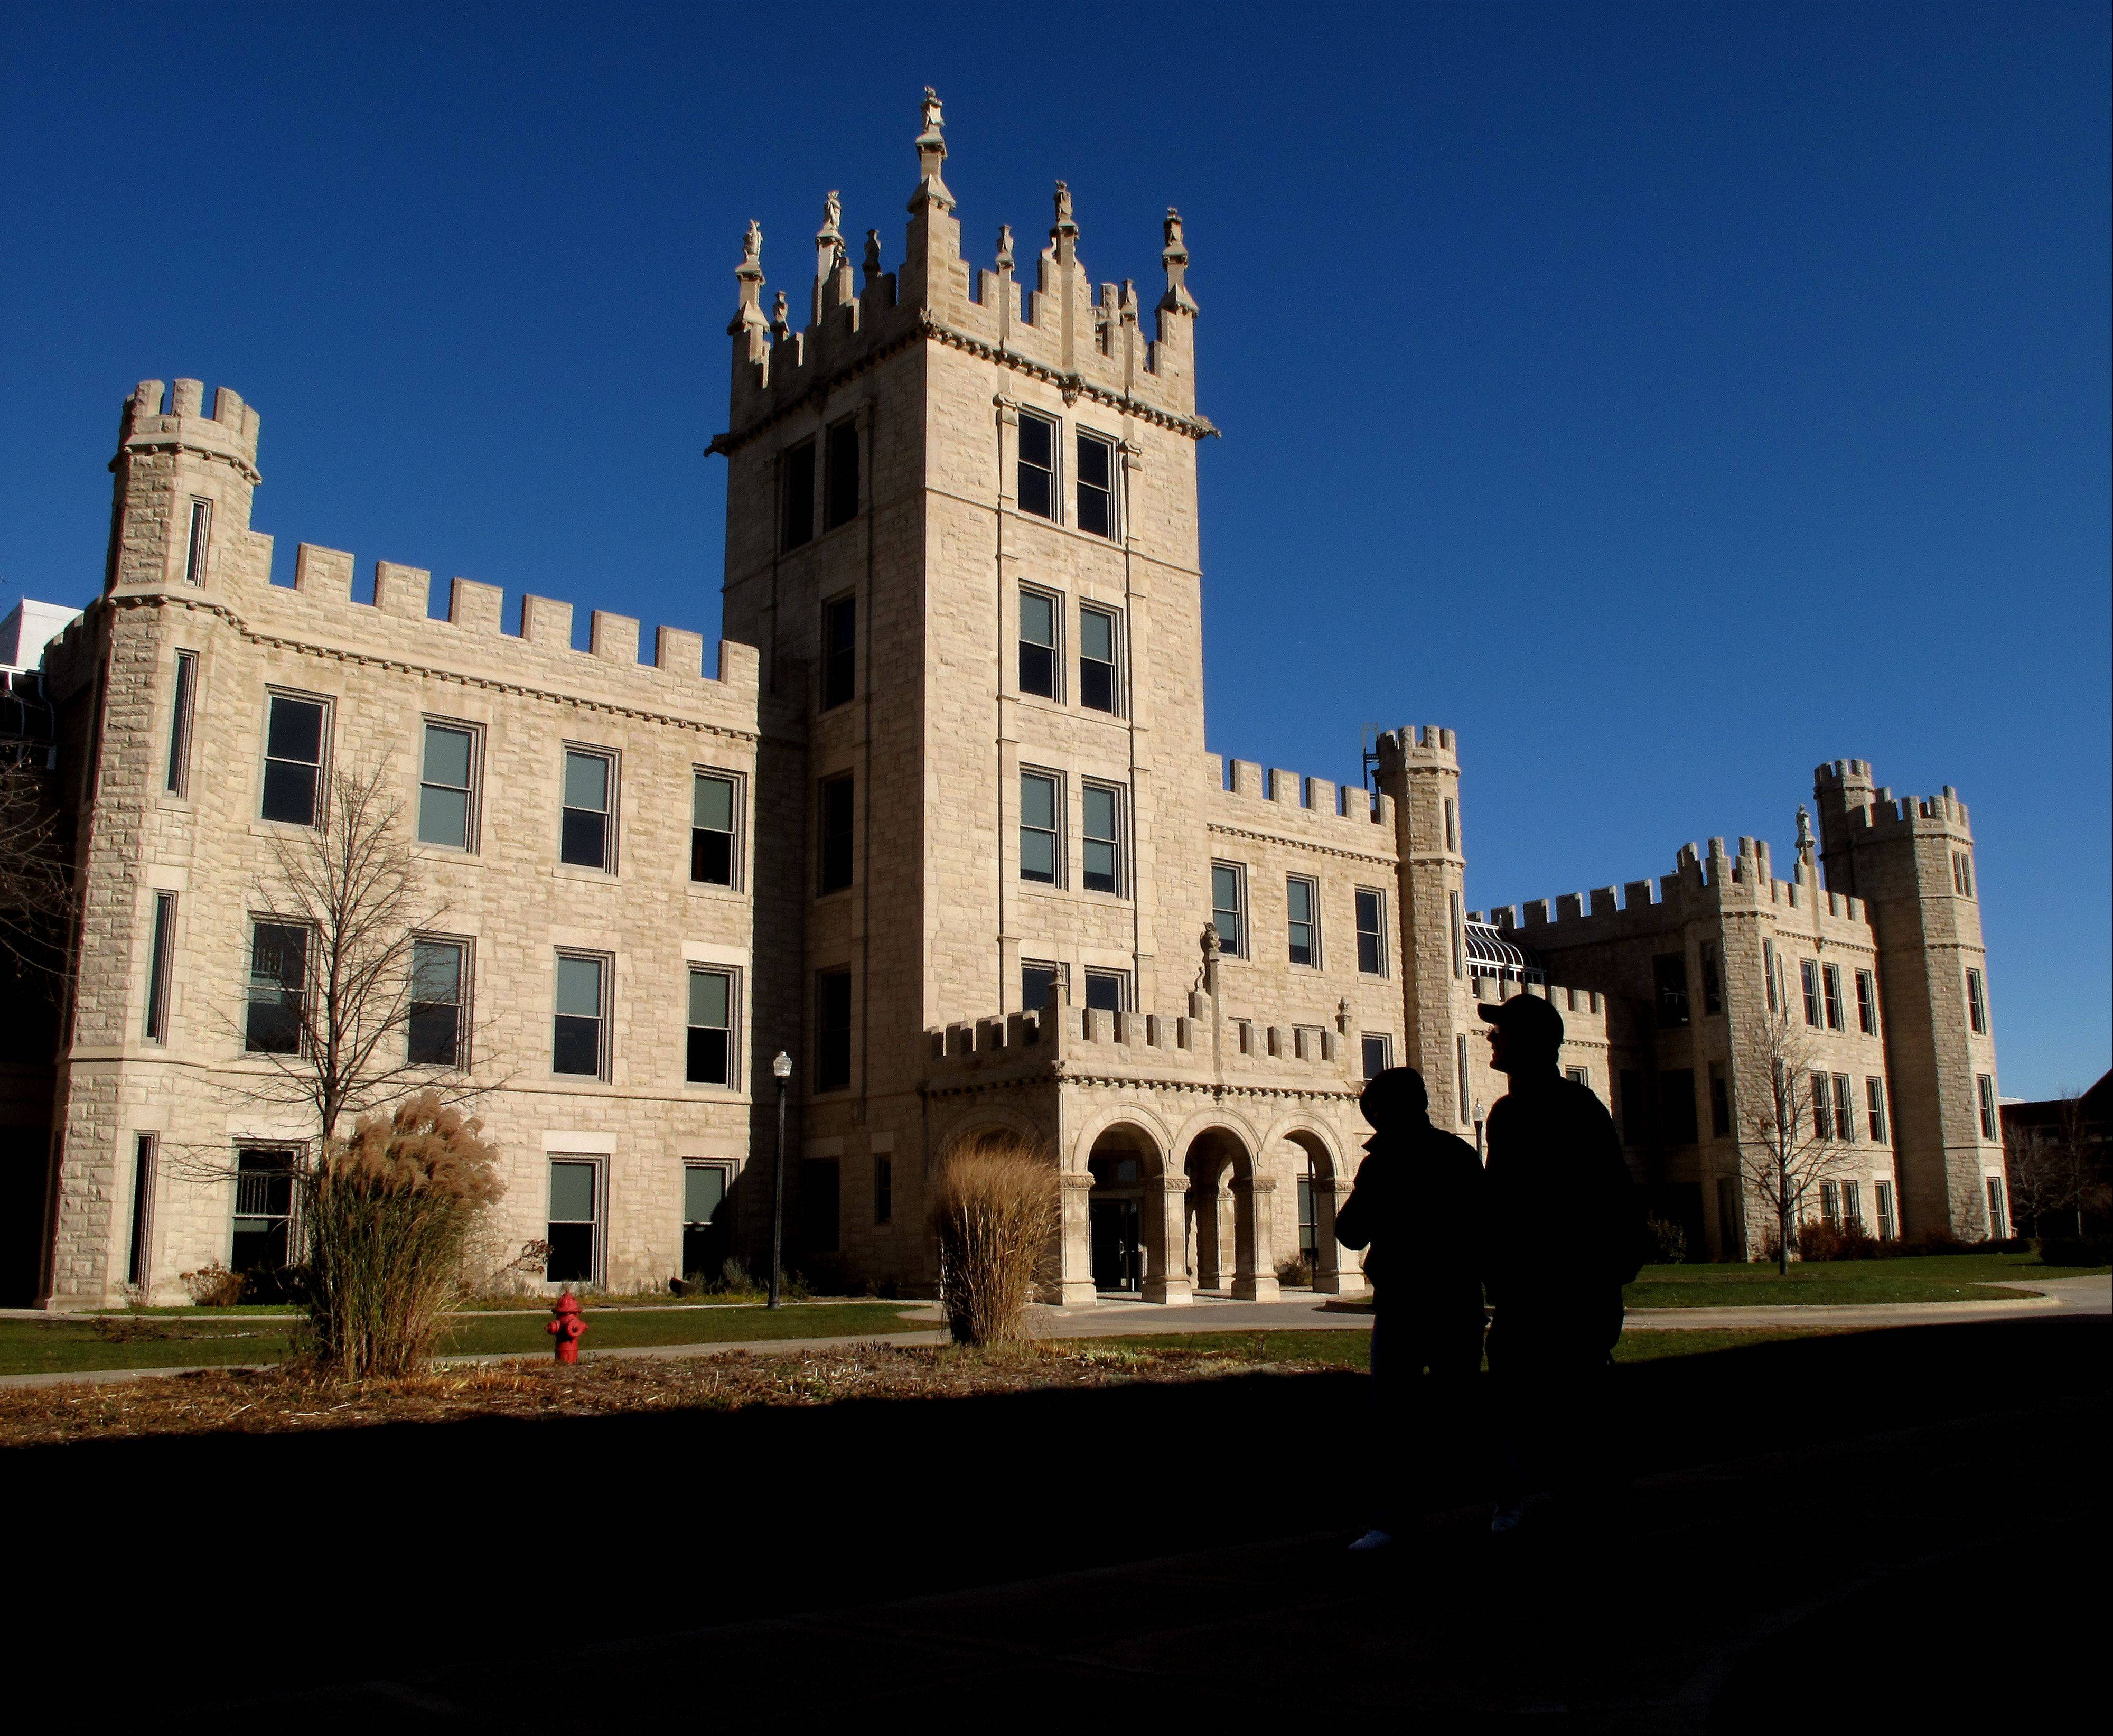 Only Northern Illinois University in DeKalb was able to maintain its debt rating.